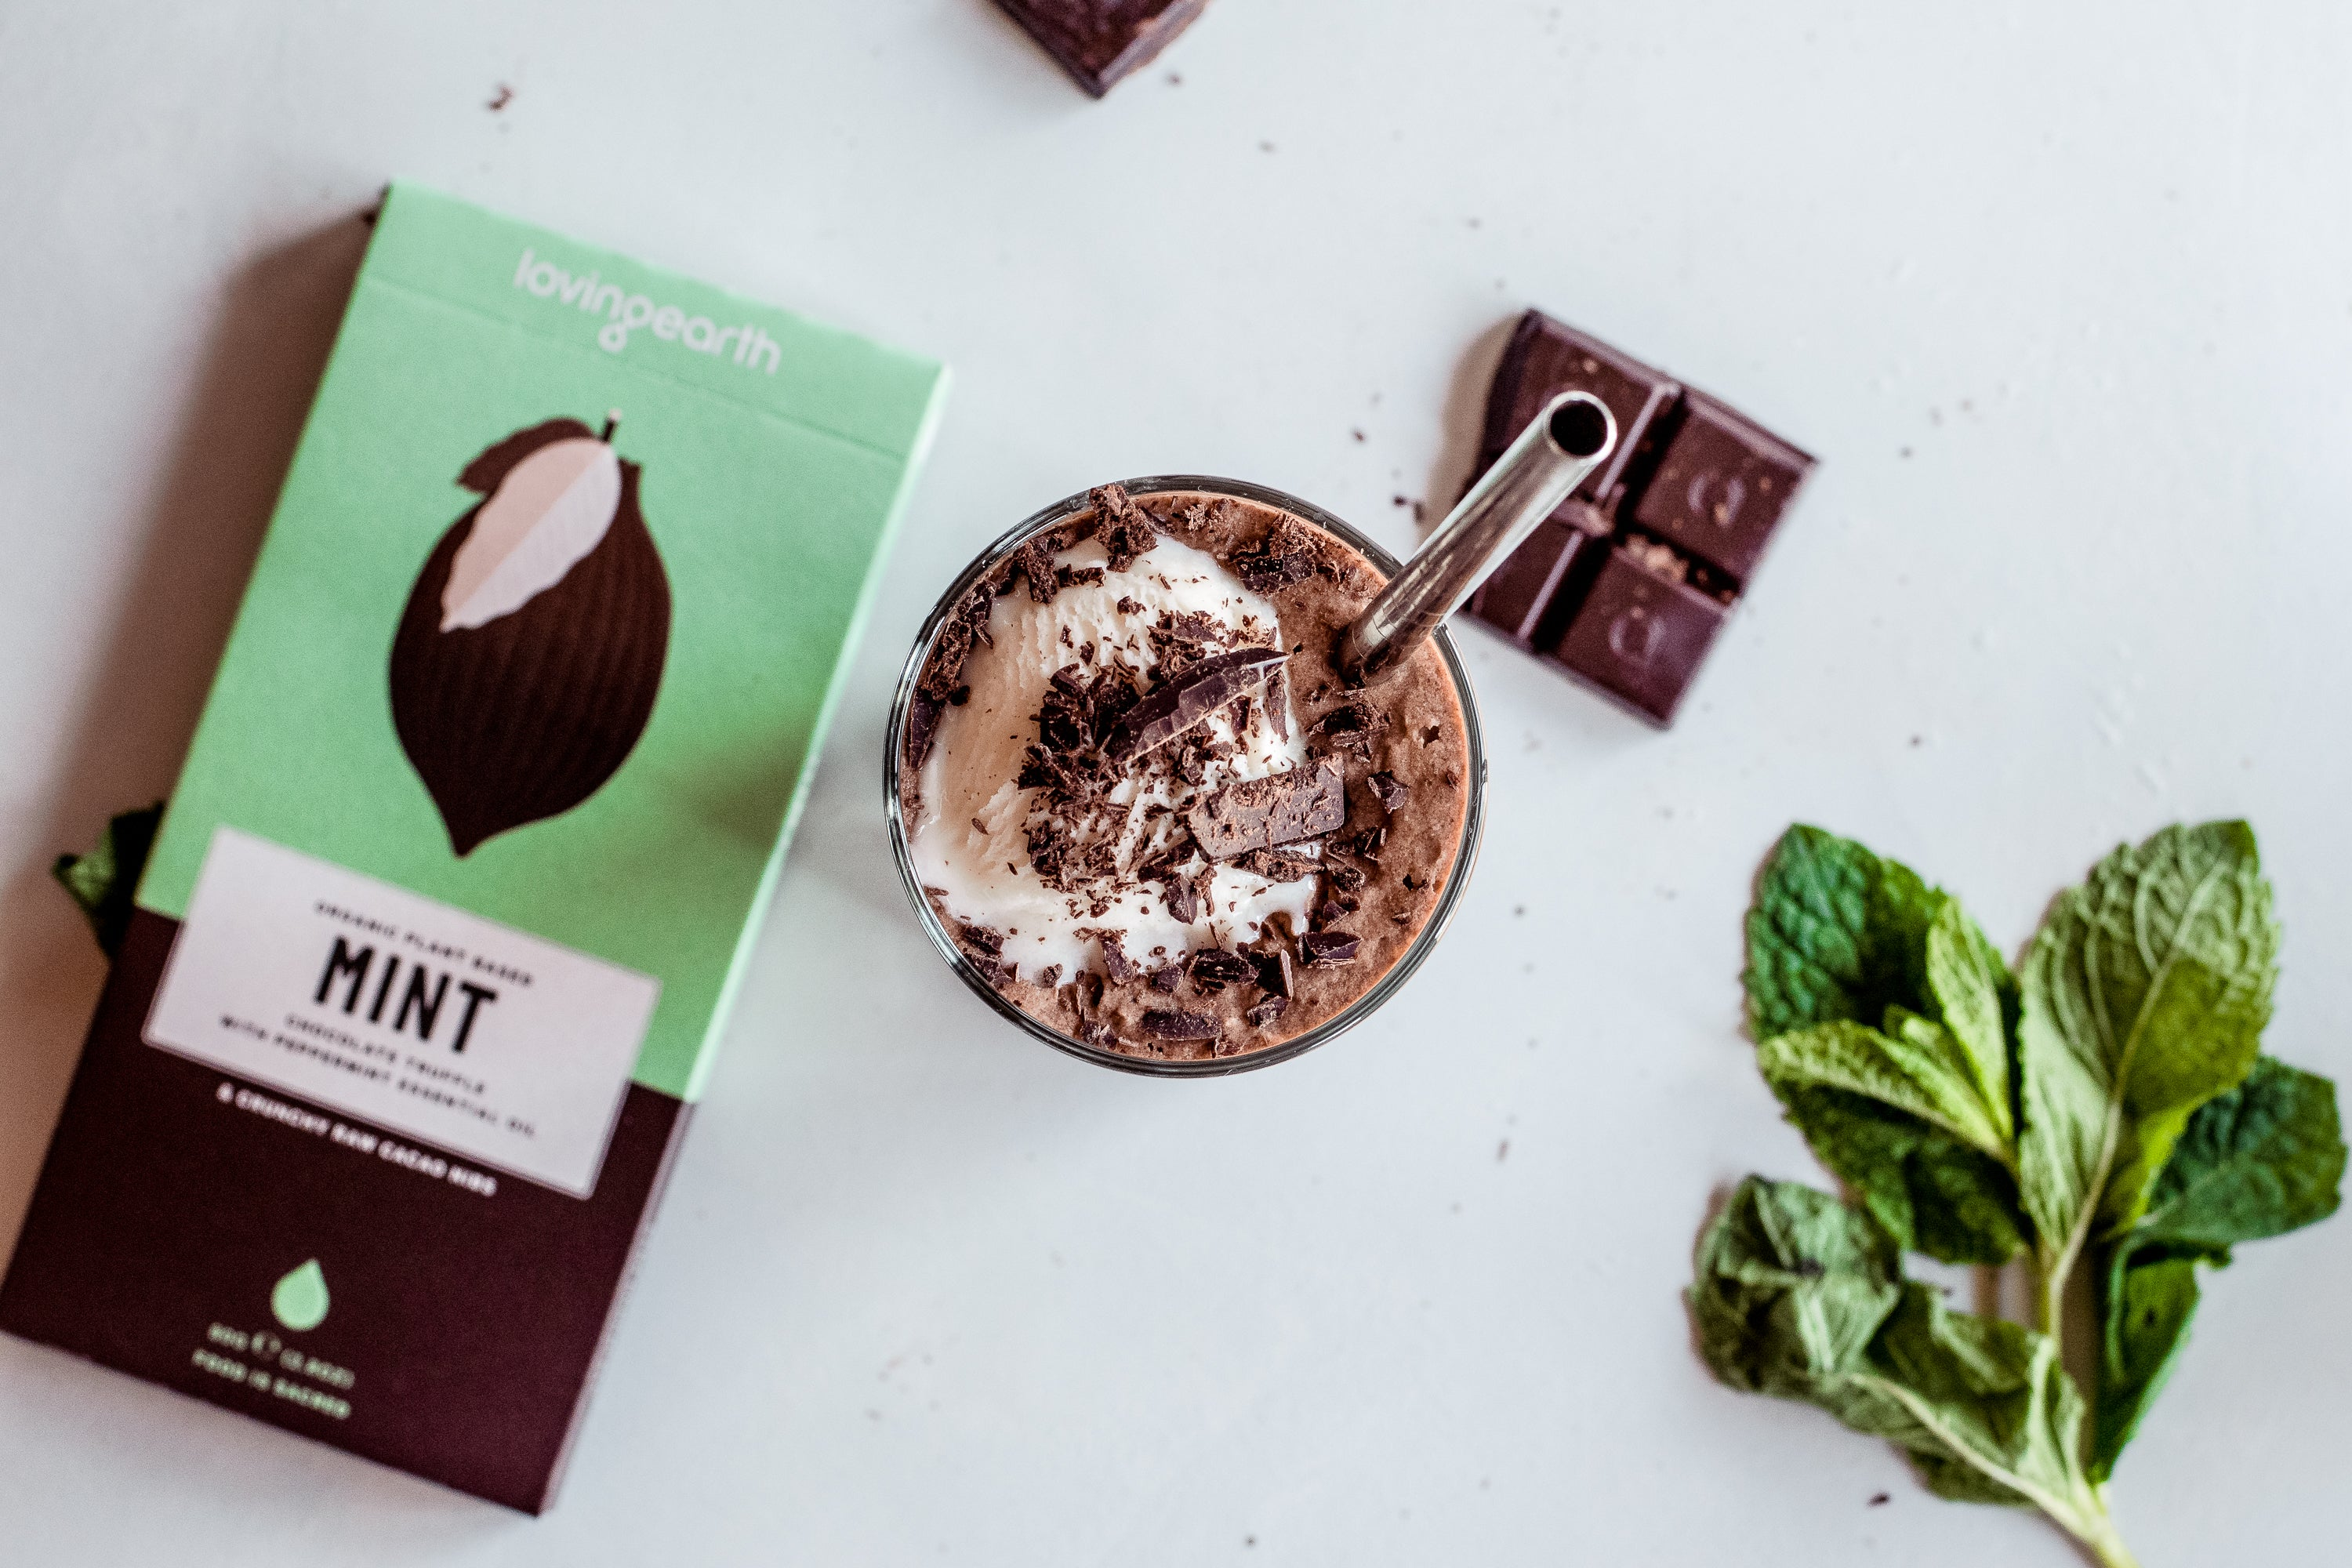 Vegan Mint Iced Chocolate by Loving Earth - Boody